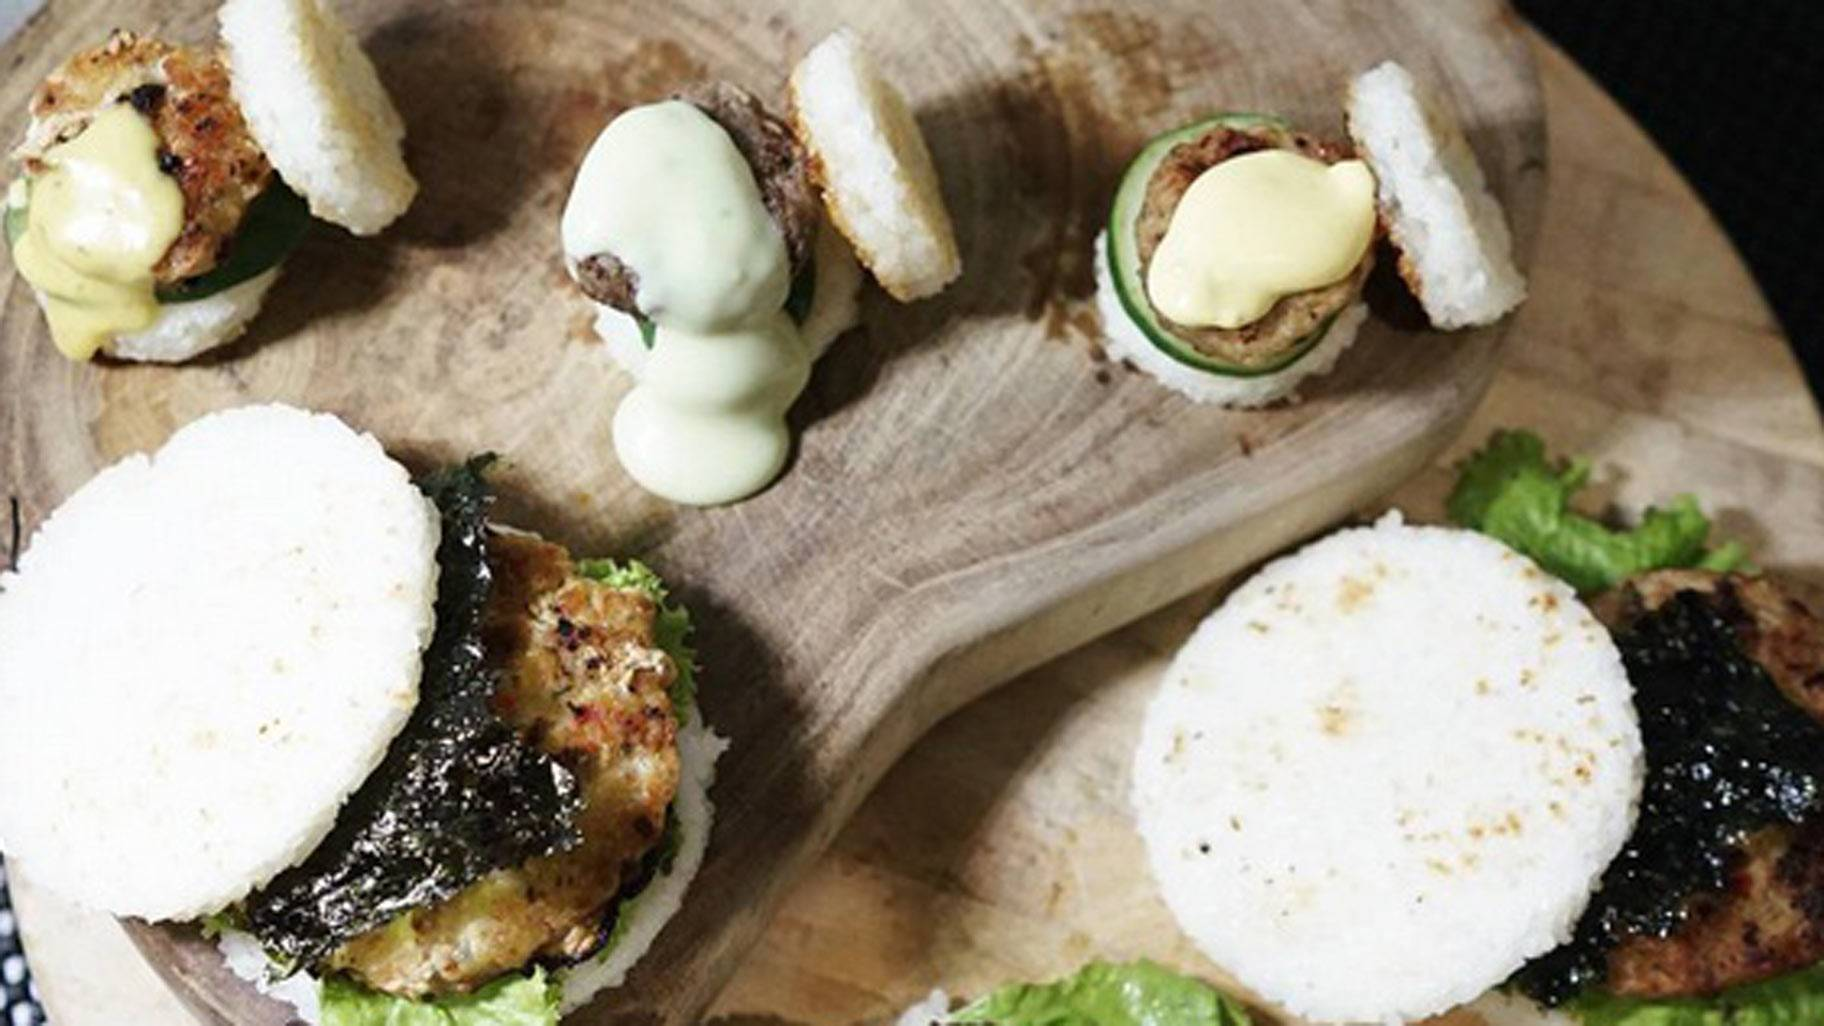 Sushi burgers are the new food fad to fall in love with